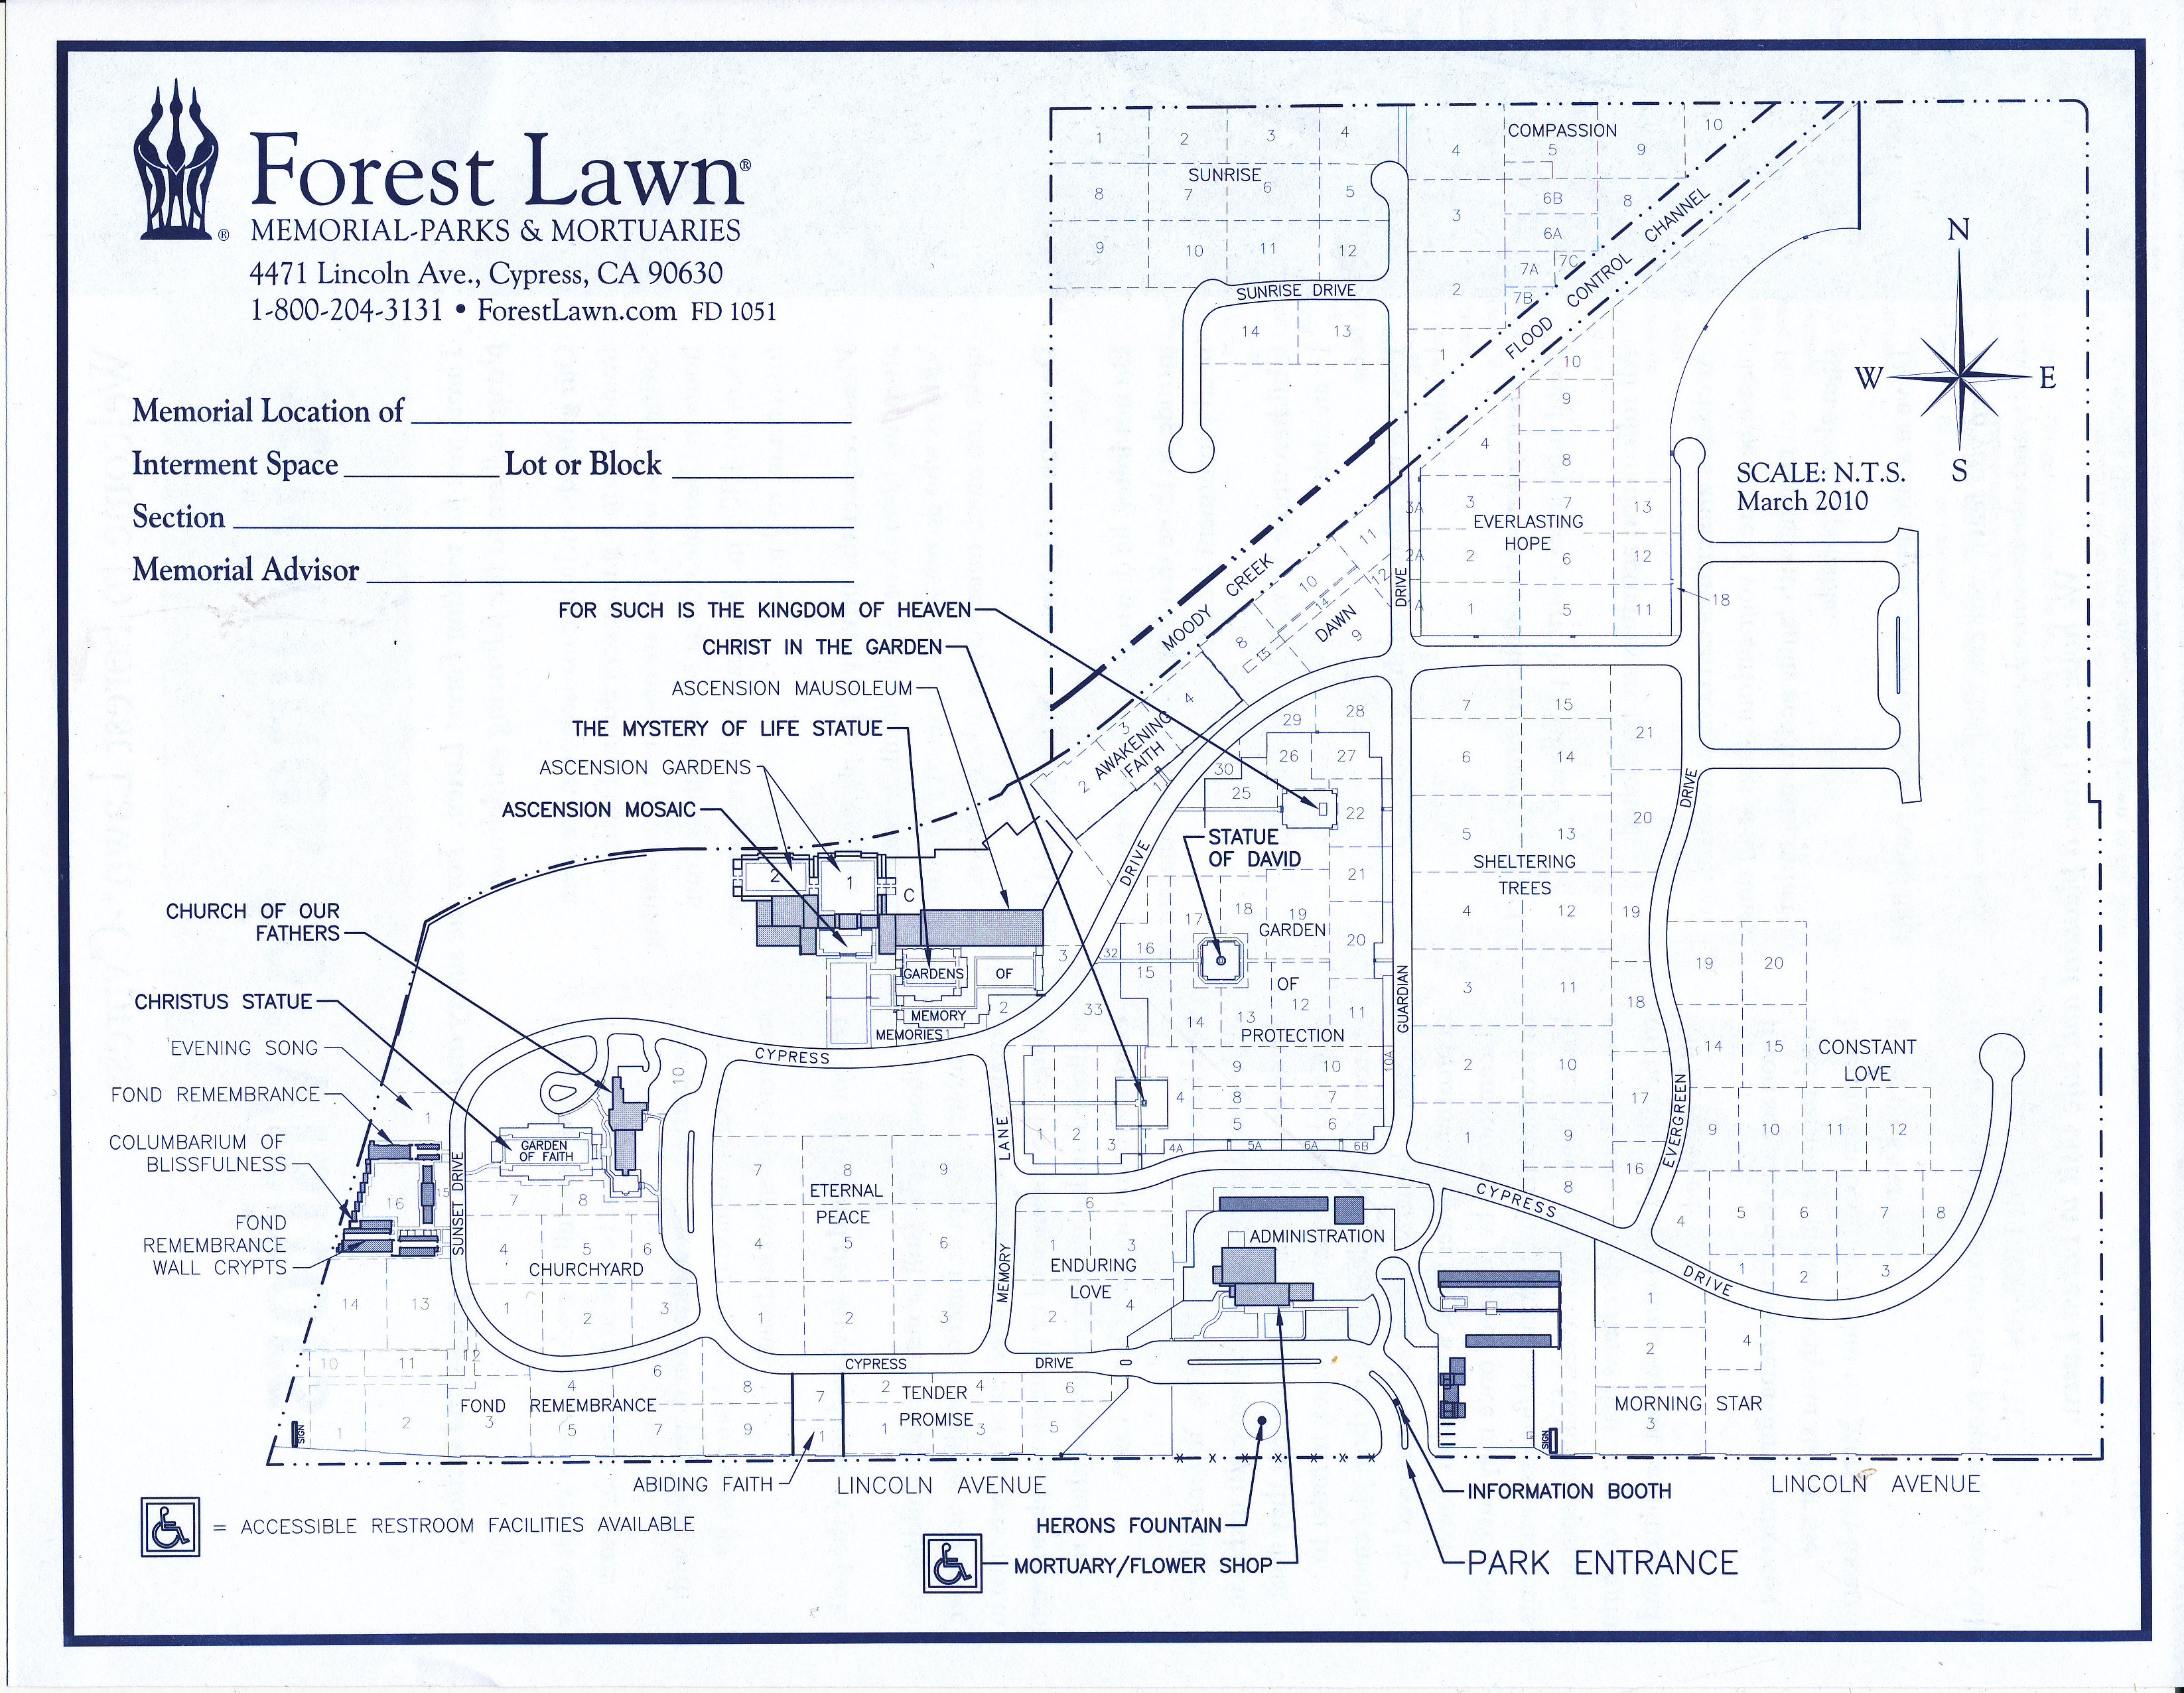 ForestLawn-Cypress Glendale Forest Lawn Map on forest lawn glendale famous, forest lawn glendale jobs, downtown glendale map, city of glendale ca zoning map, forest lawn glendale celebrities, burbank california map, hollywood hills map, forest lawn glendale directions, forest lawn glendale art, forest lawn cemetery glendale, hollywood forever map, forest lawn glendale the builders dreed, forest lawn glendale ca, forest lawn glendale hours, forest lawn glendale michael jackson tomb, cerritos ca map, hollywood cemetery map, westgate glendale map,